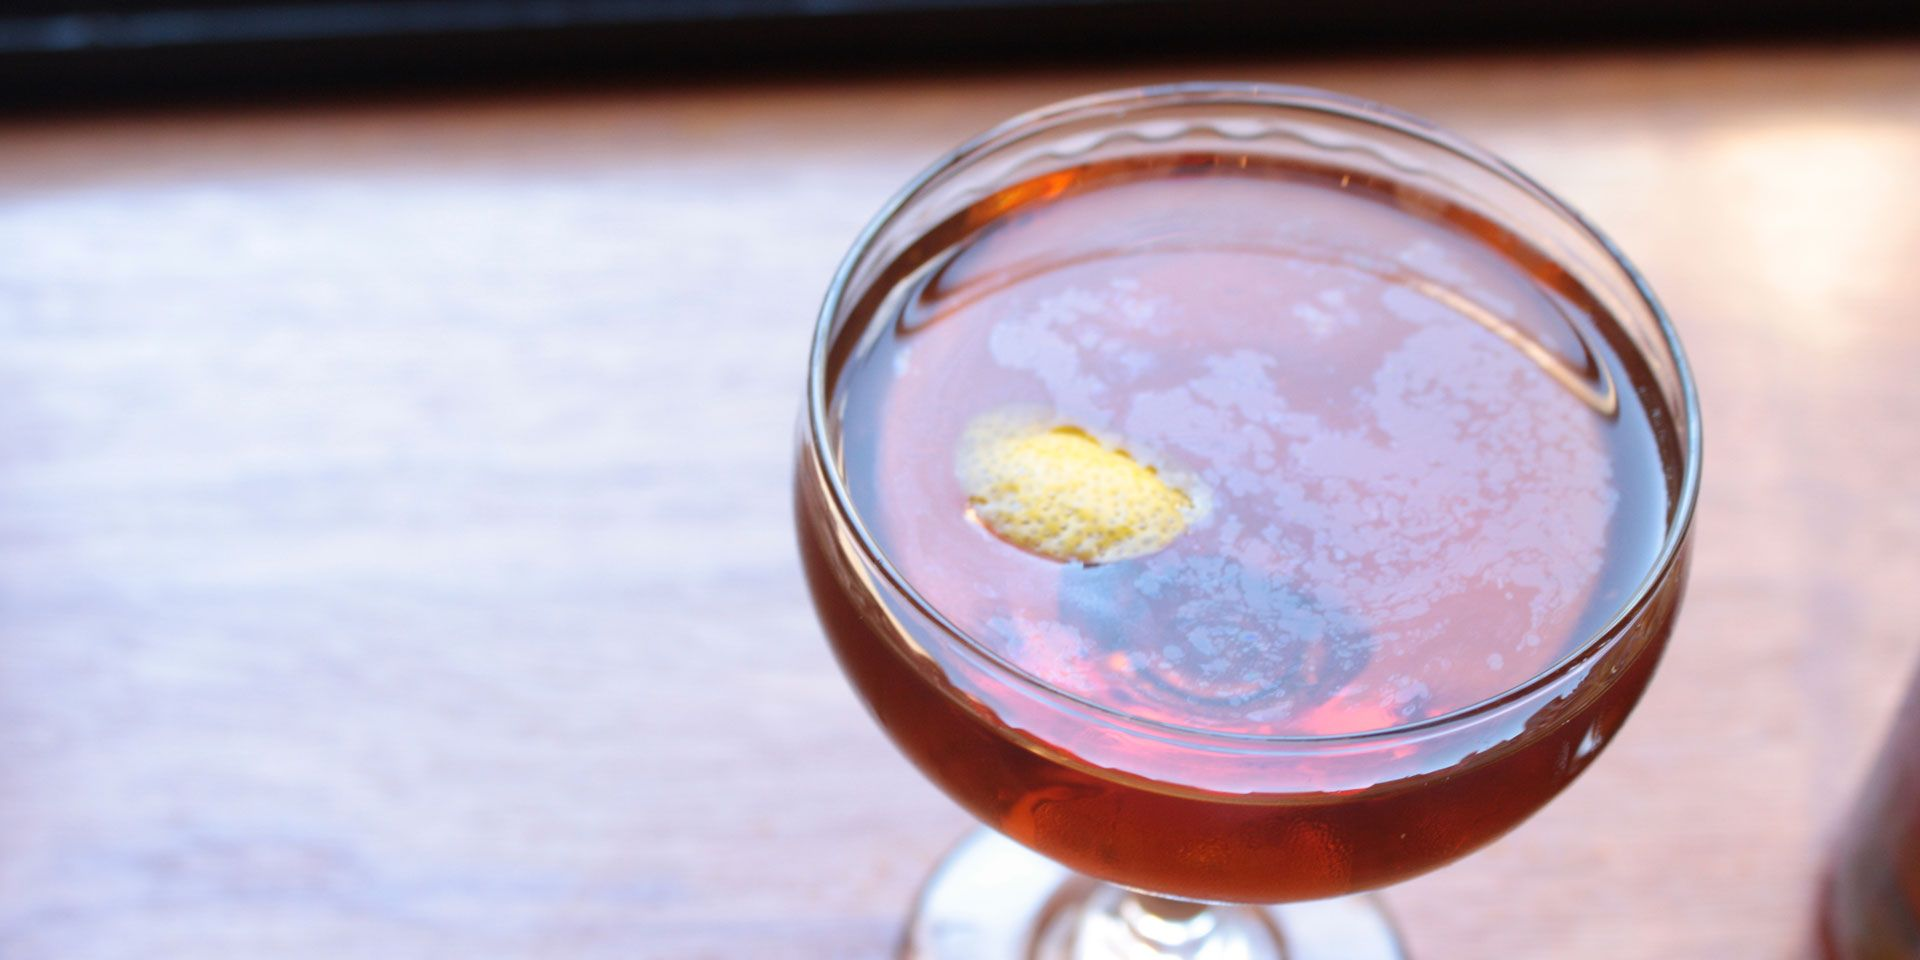 6 Classic, Mad Men-Inspired Cocktails to Serve at Your Next Party